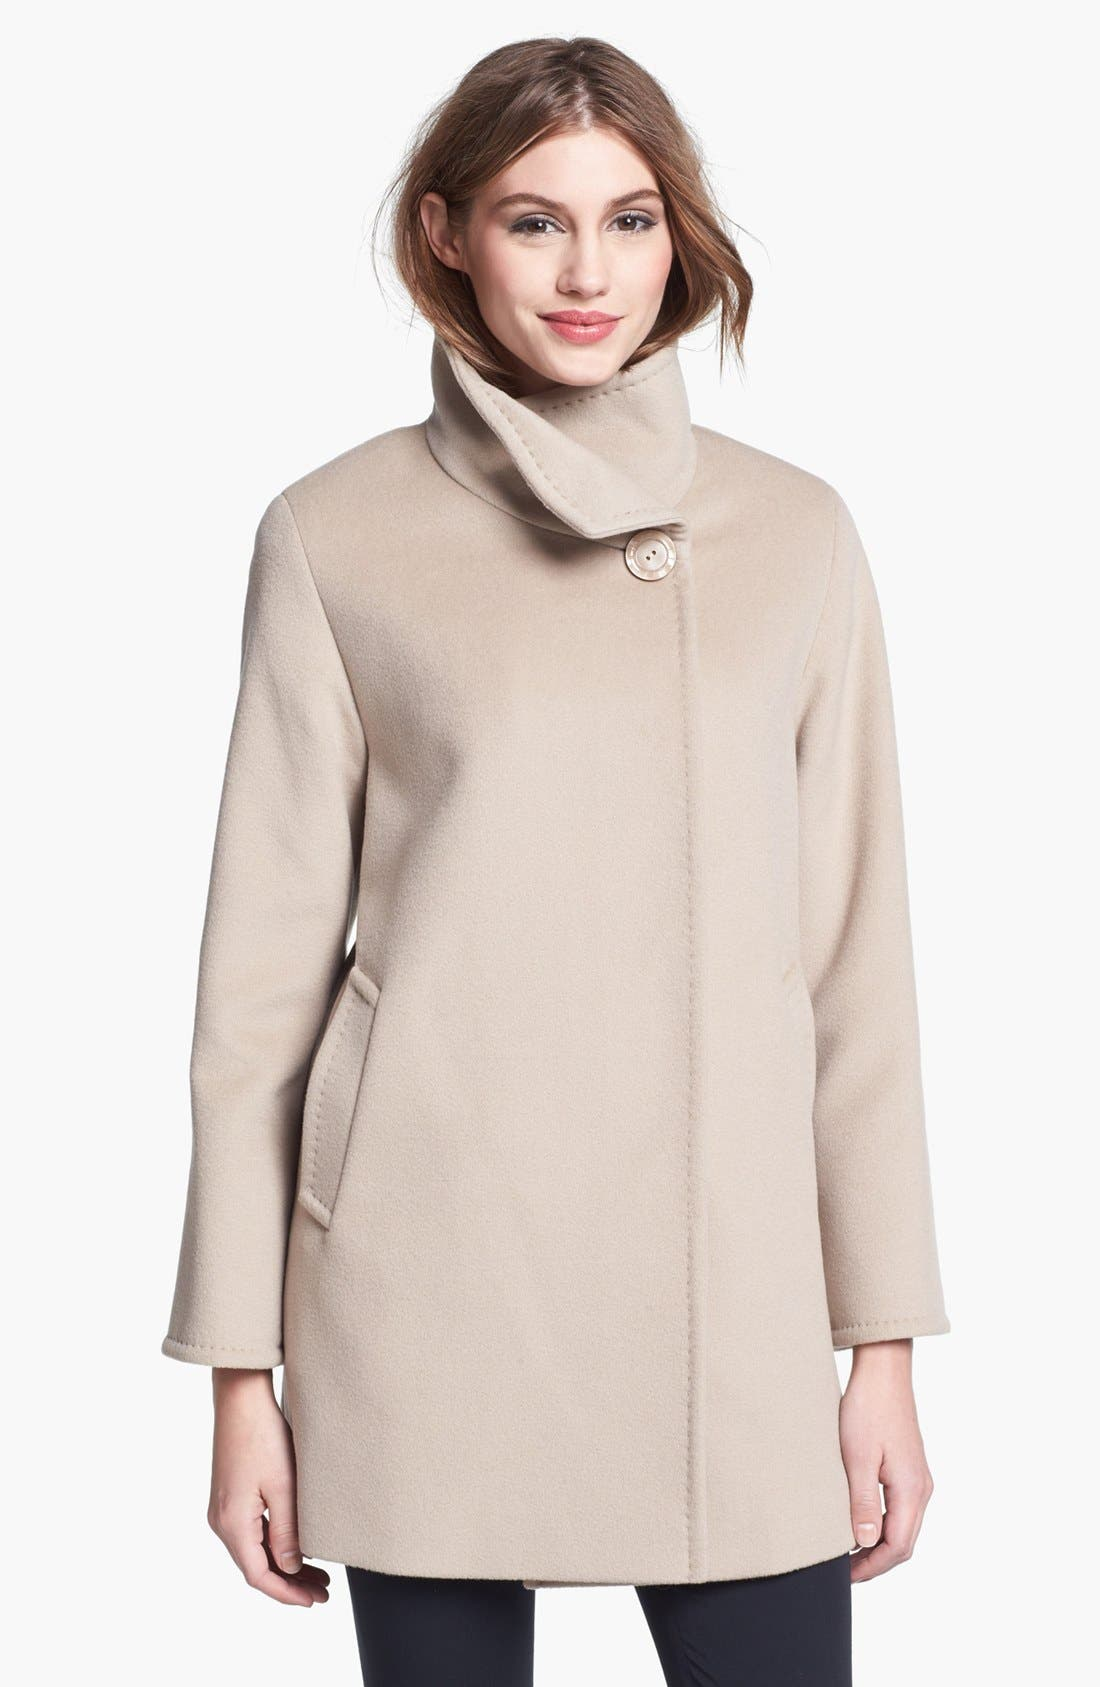 Alternate Image 1 Selected - Cinzia Rocca Due Convertible Collar Wool Coat (Petite)